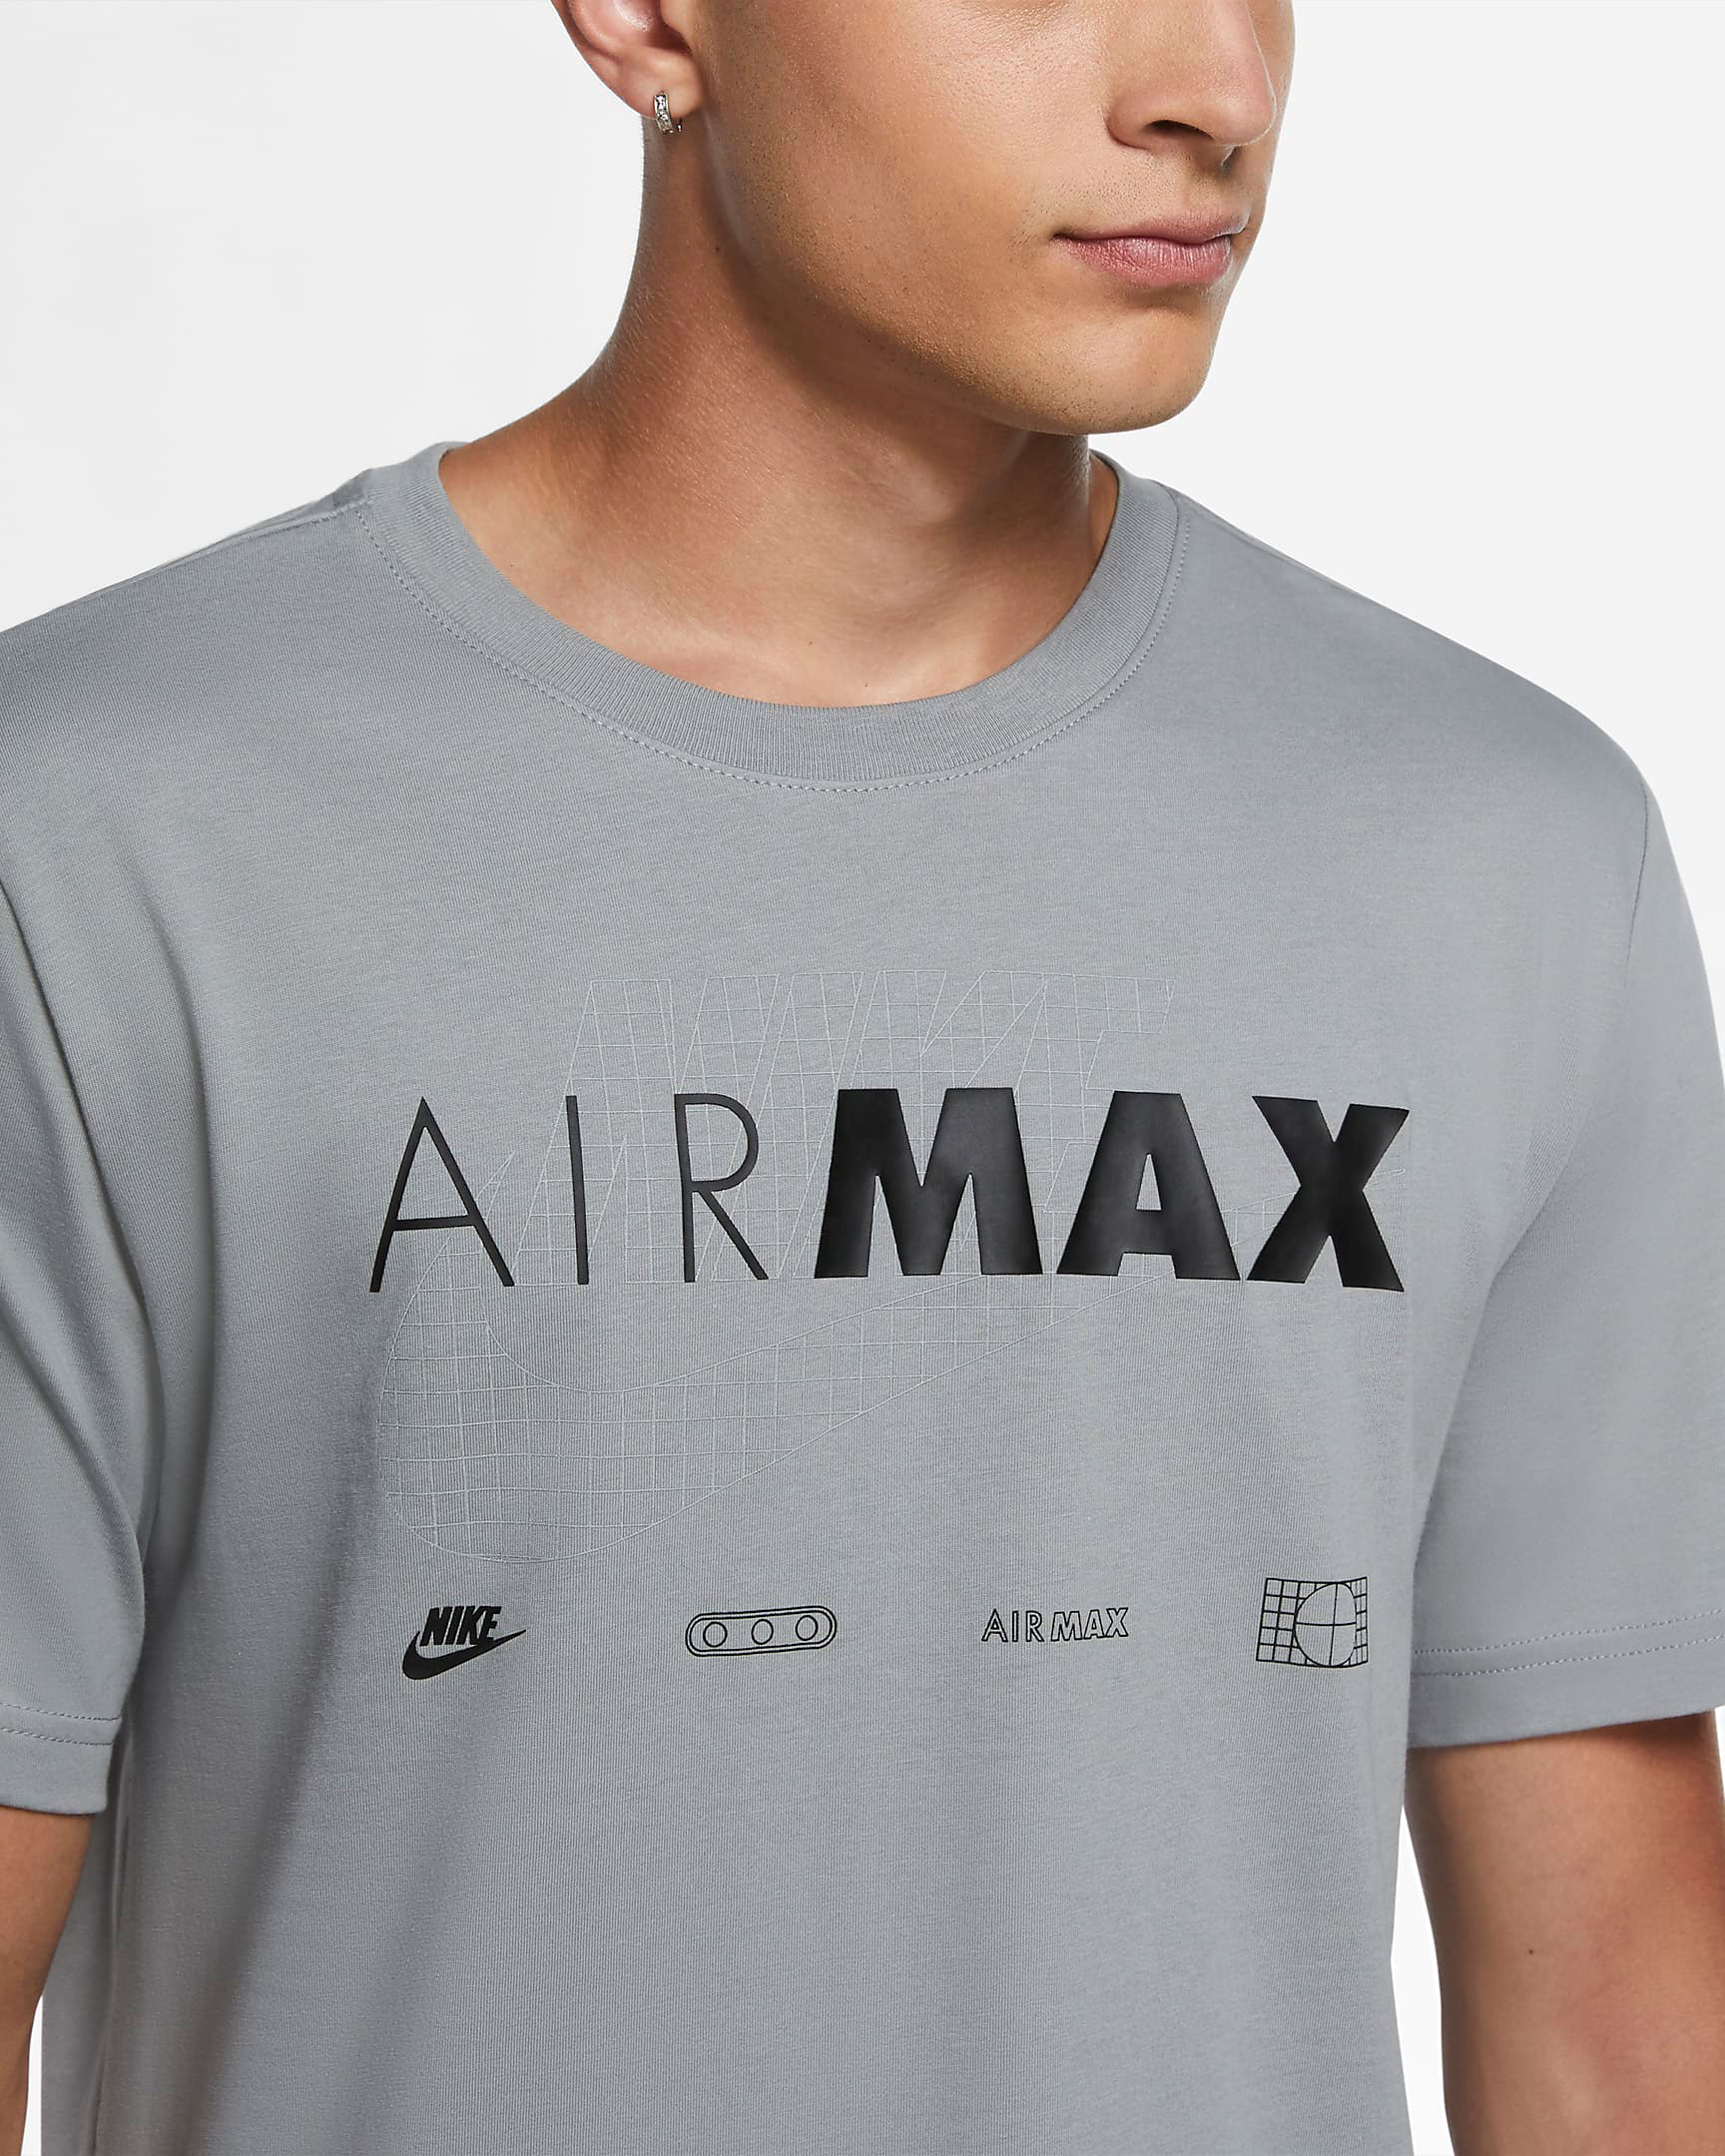 nike-air-max-95-neon-grey-t-shirt-match